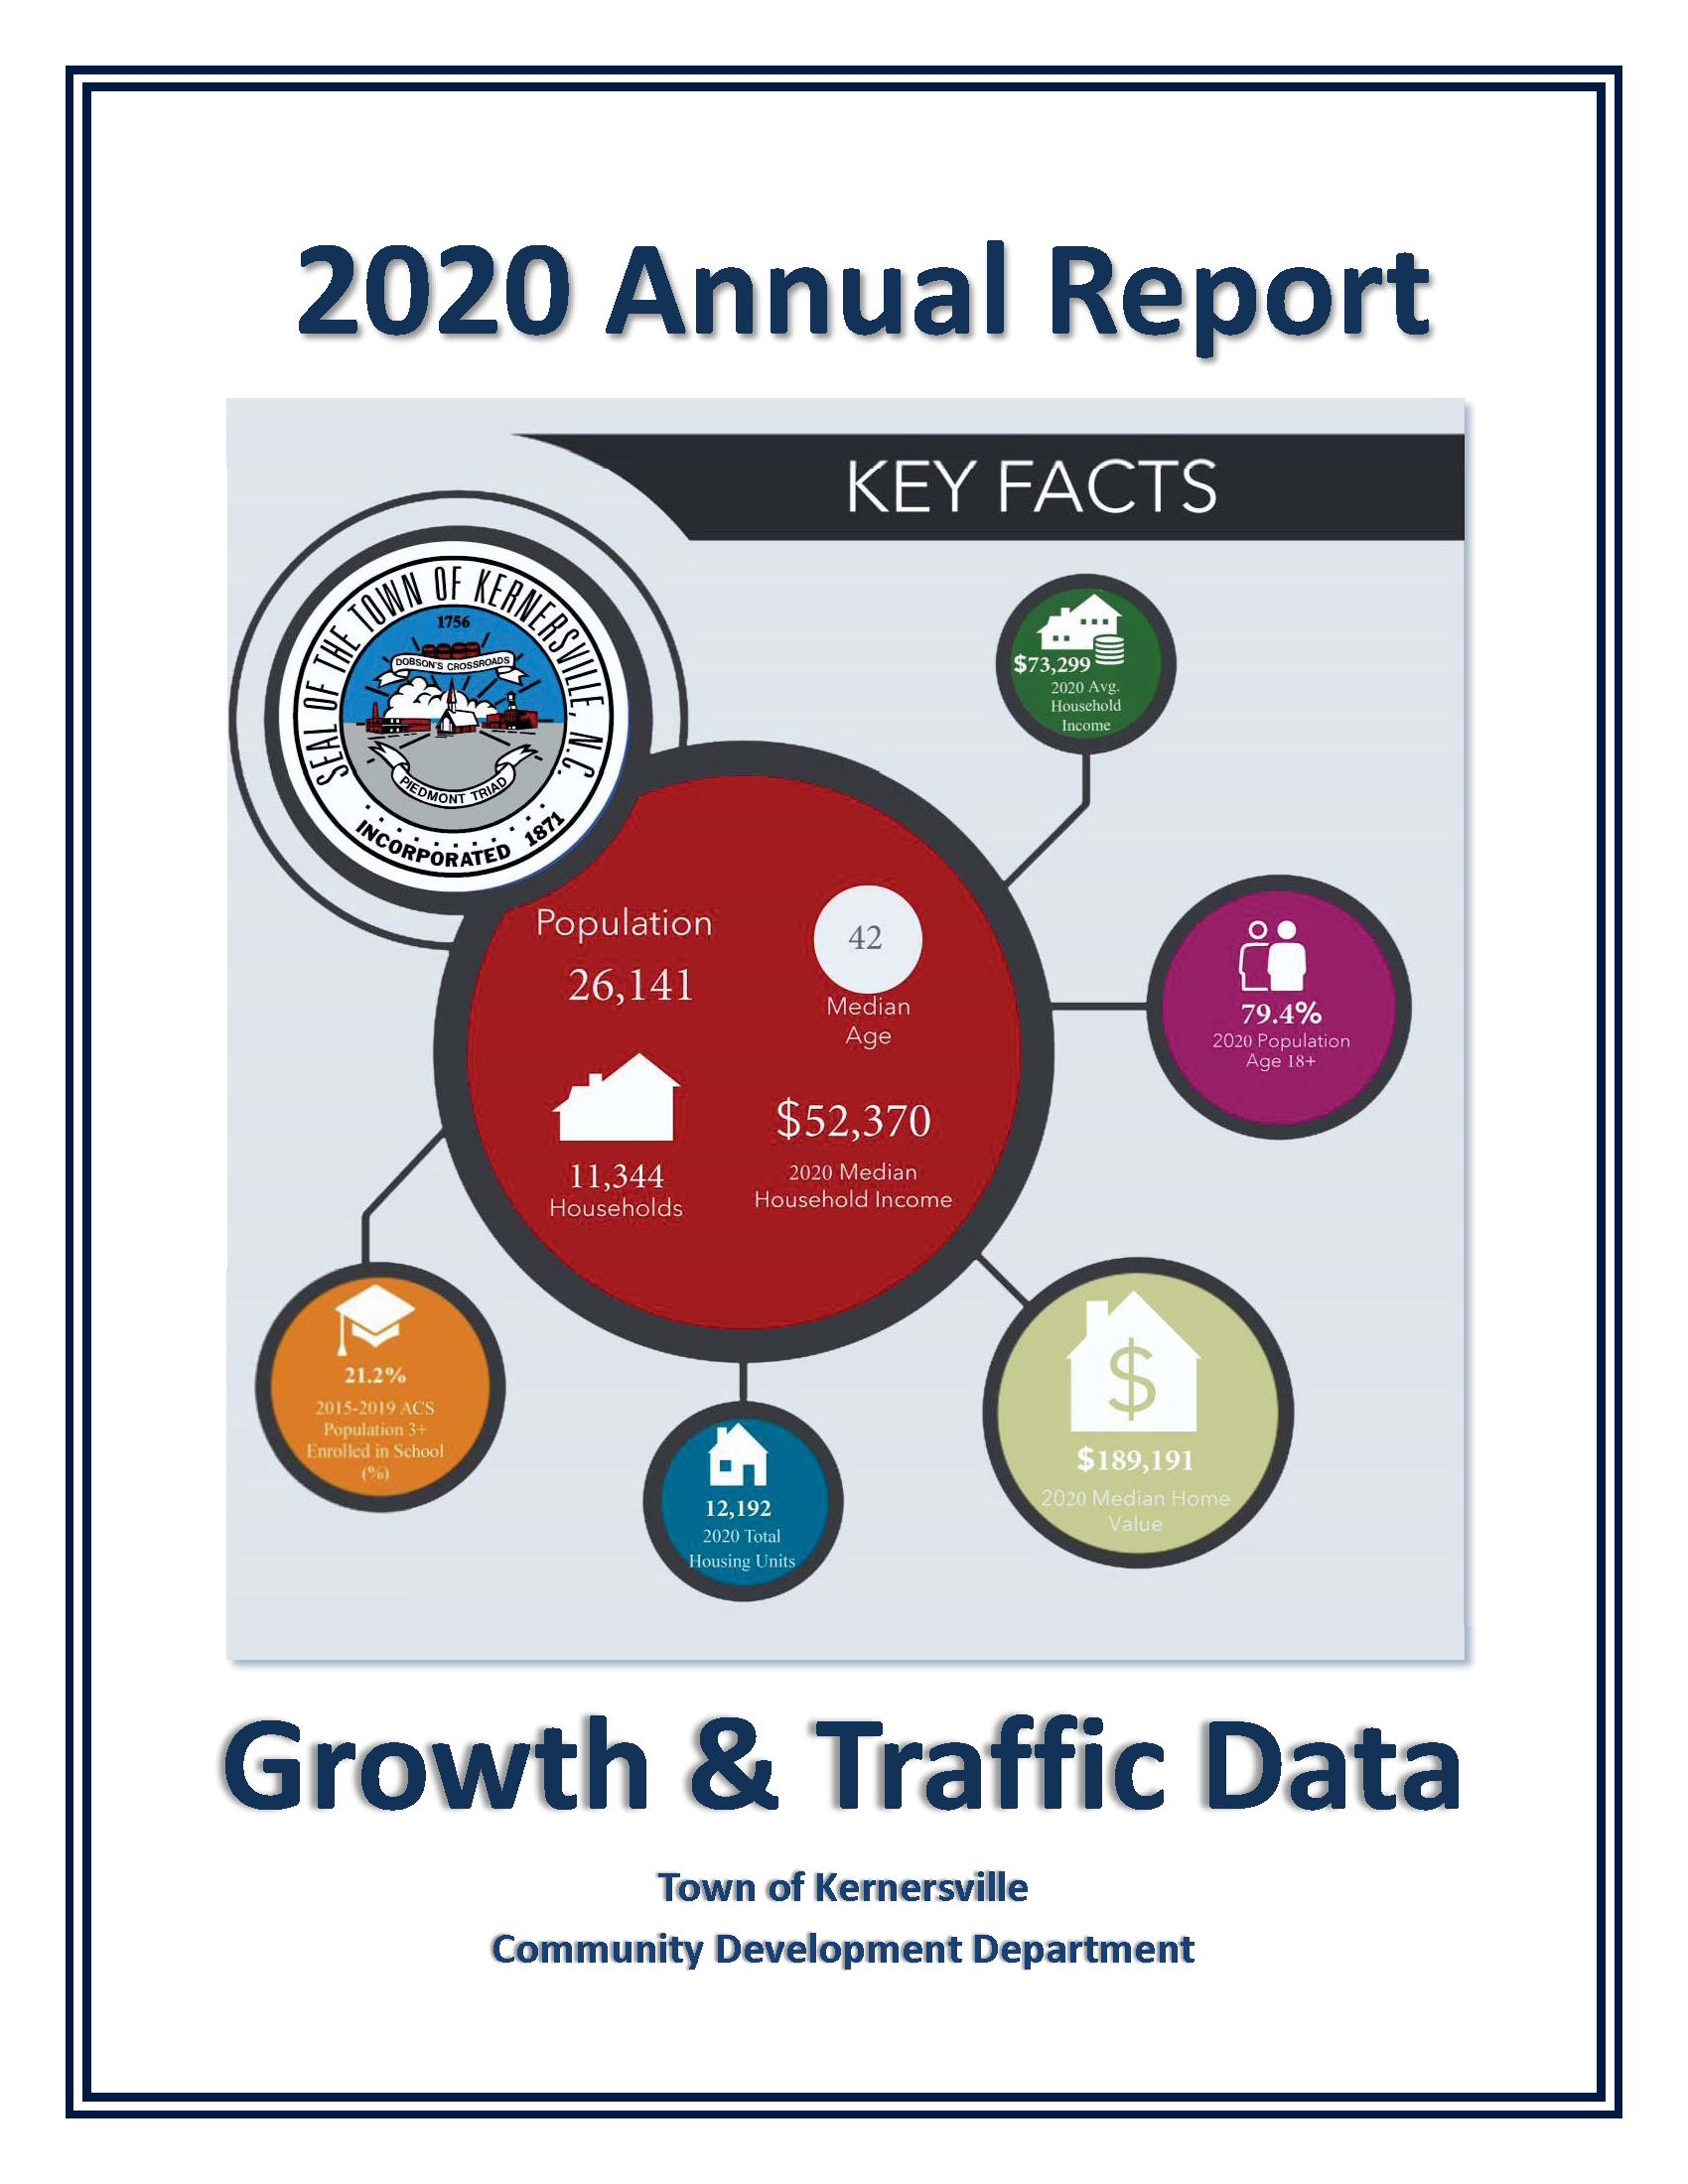 Growth and Traffic Data